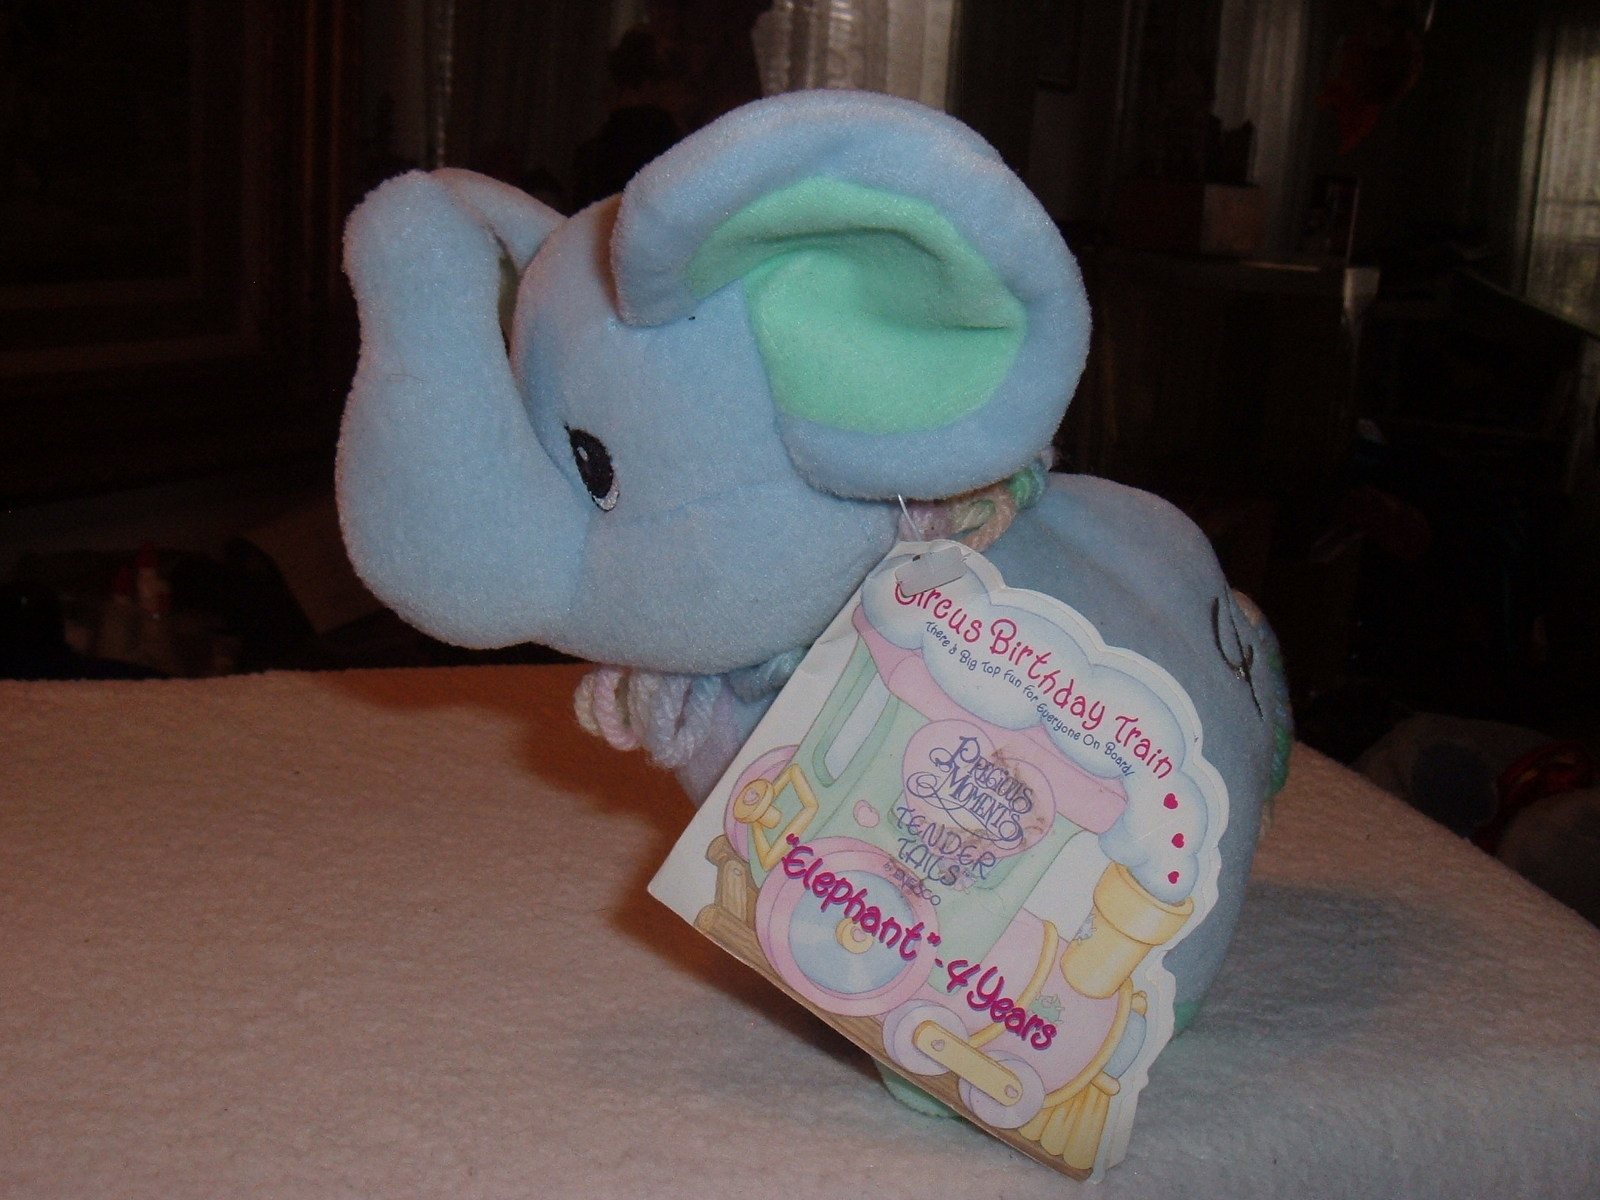 Precious Moments Tender Tails Age 4 Elephant Plush Stuffed Toy Doll Animal w/Tag image 4